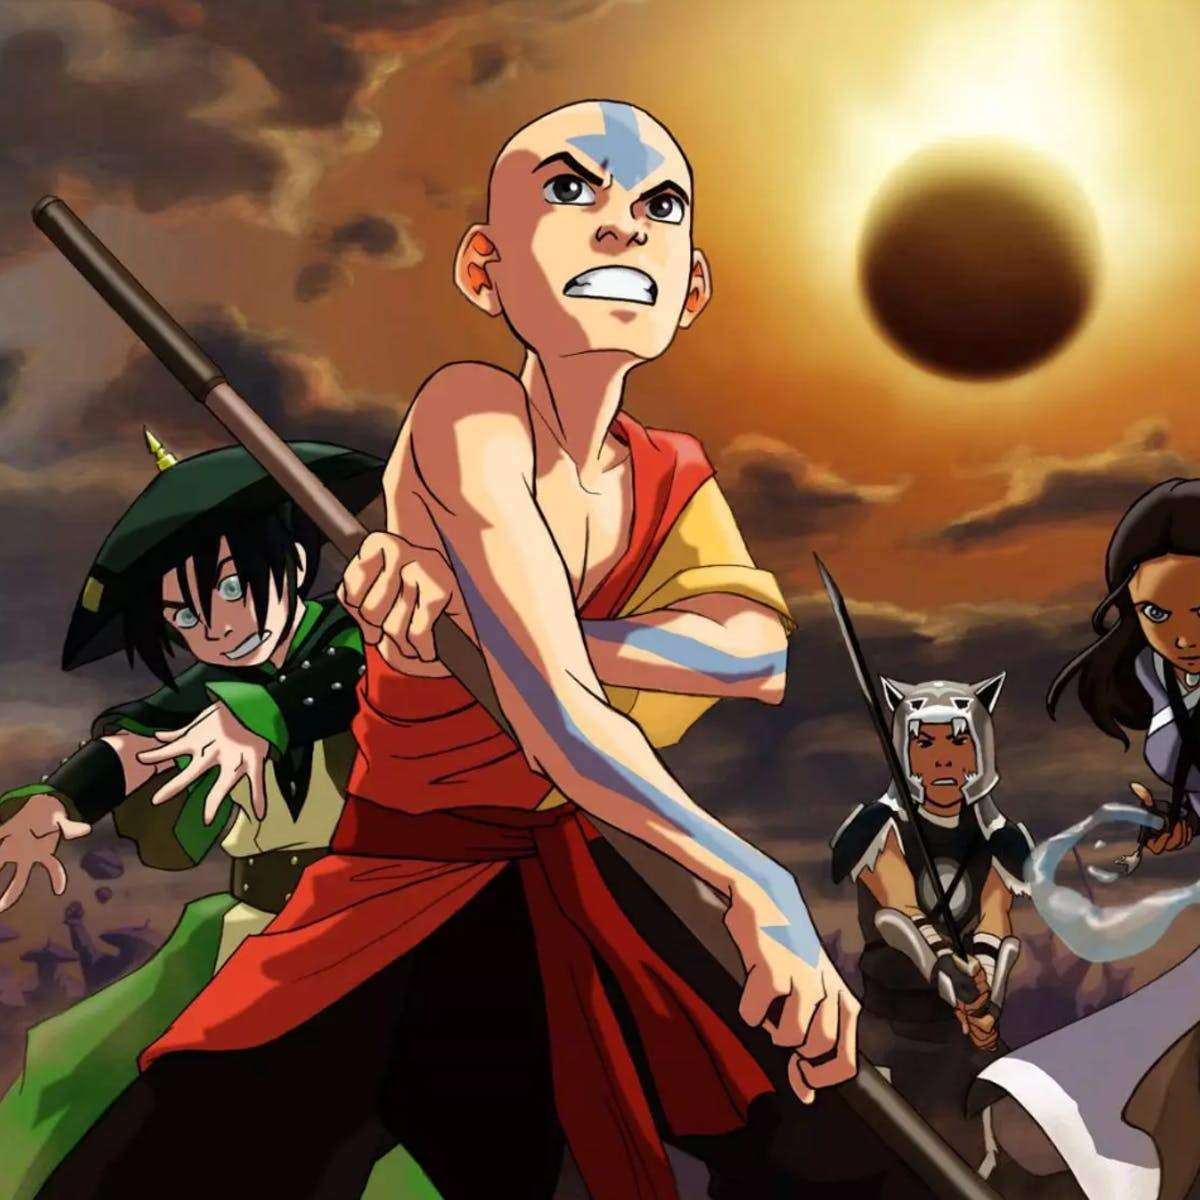 Avatar' Series 3: The Guys Who Made 'Last Airbender' Want